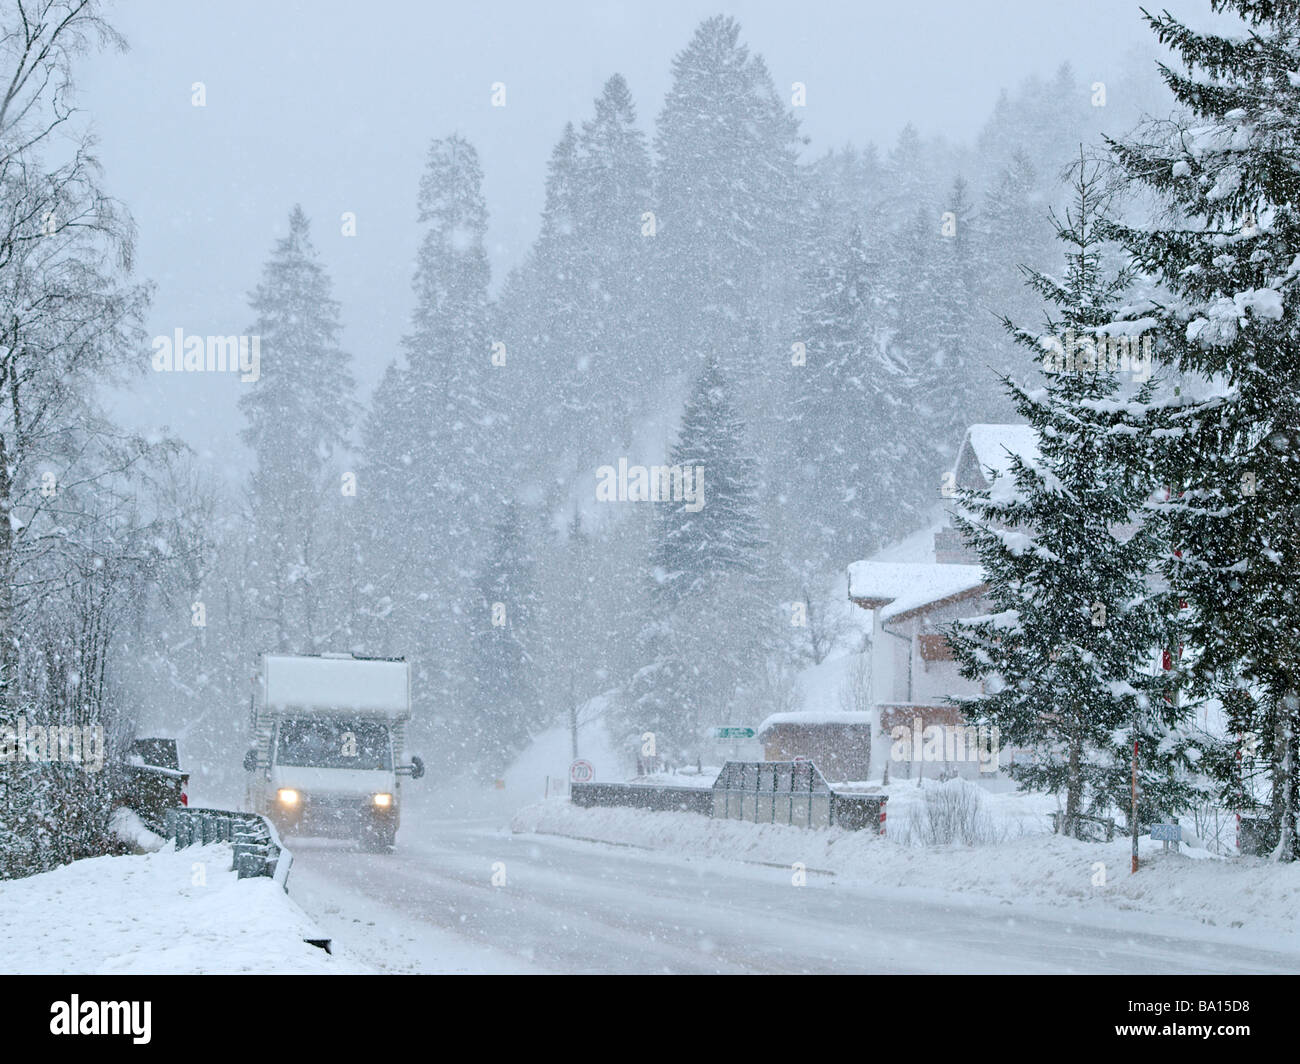 Car driving through heavy snowing, Achenkirch, Austria - Stock Image